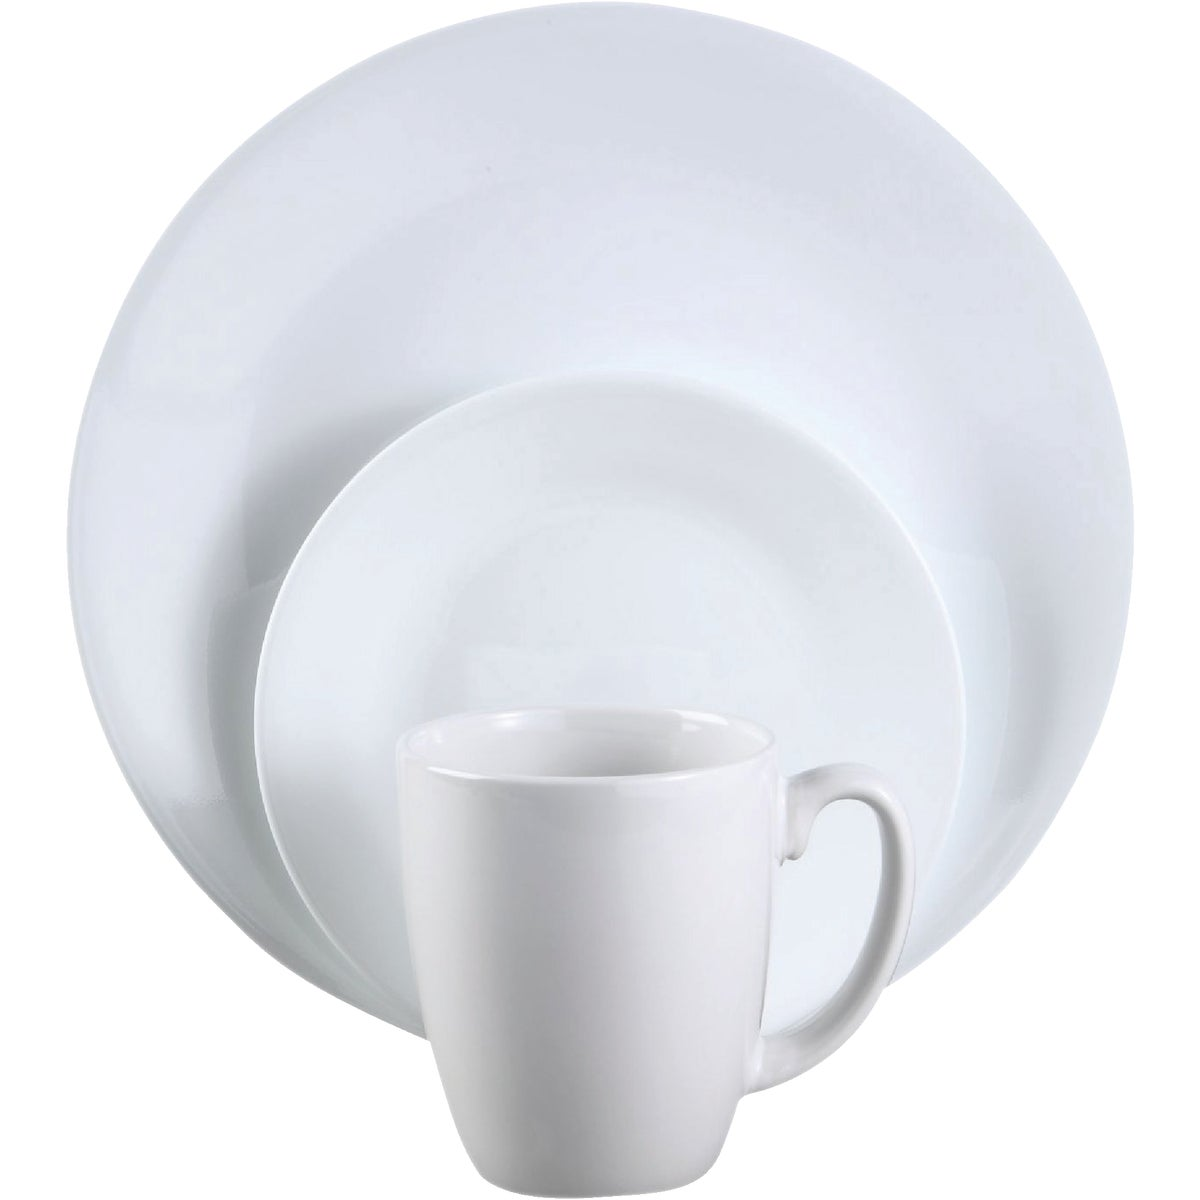 16PC WINTER DINNERWARE - 6022003 by World Kitchen